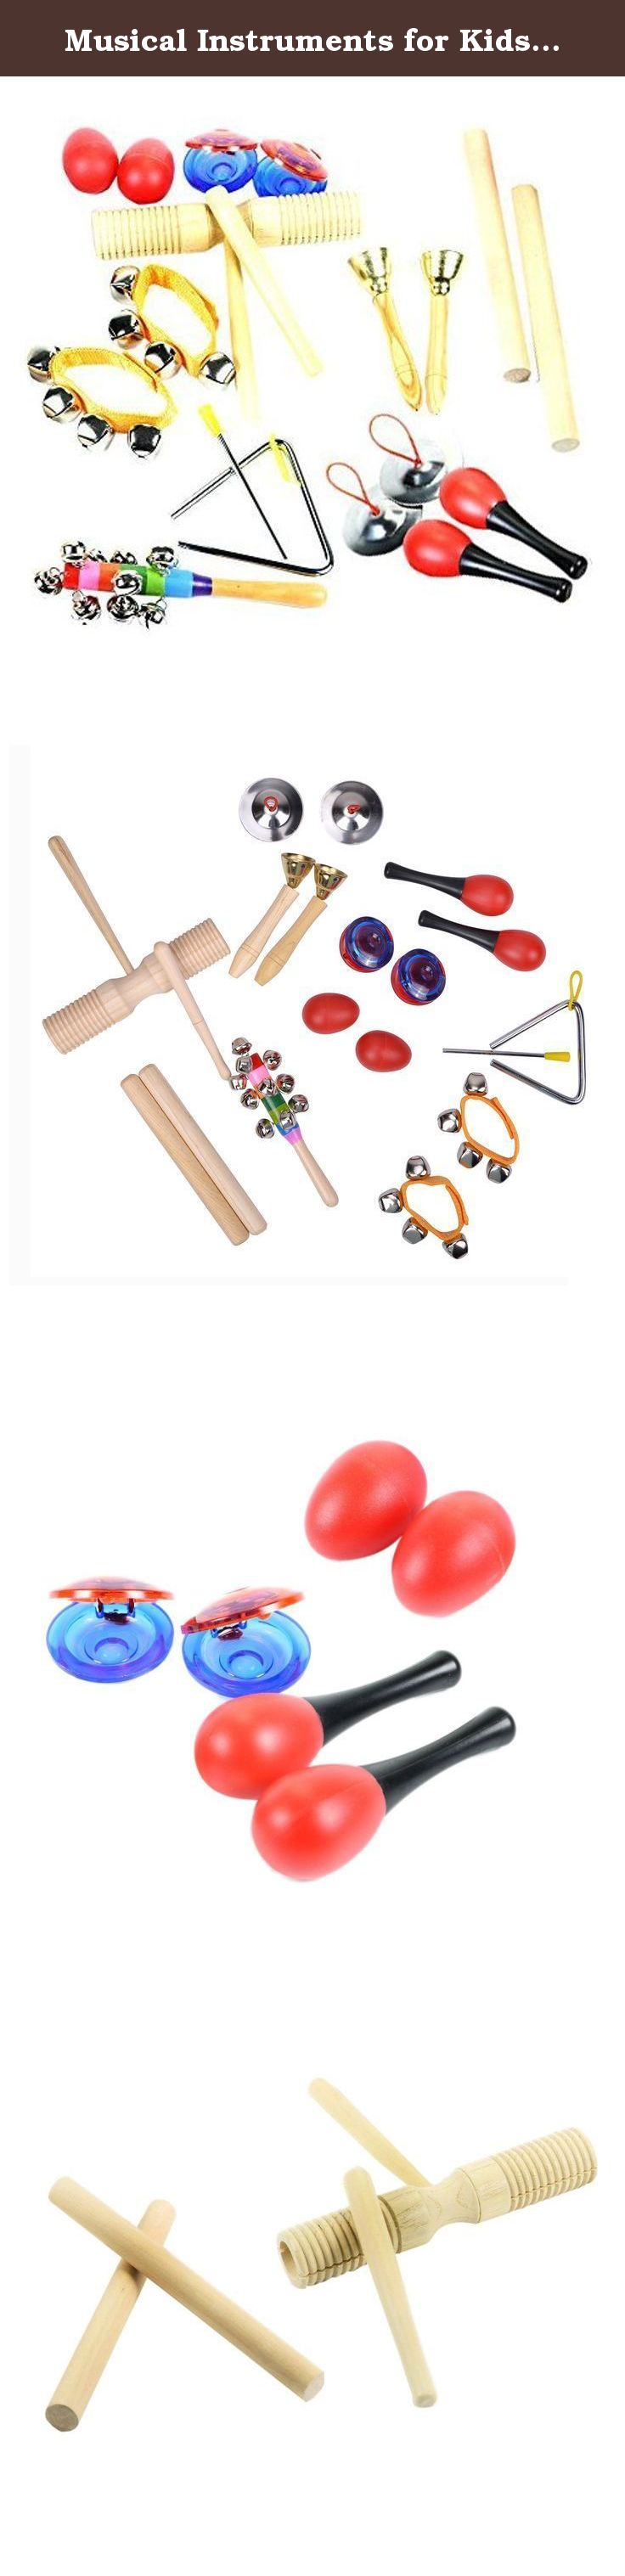 Musical Instruments for Kids TSLIKANDO Percussion Rhythm Maracas